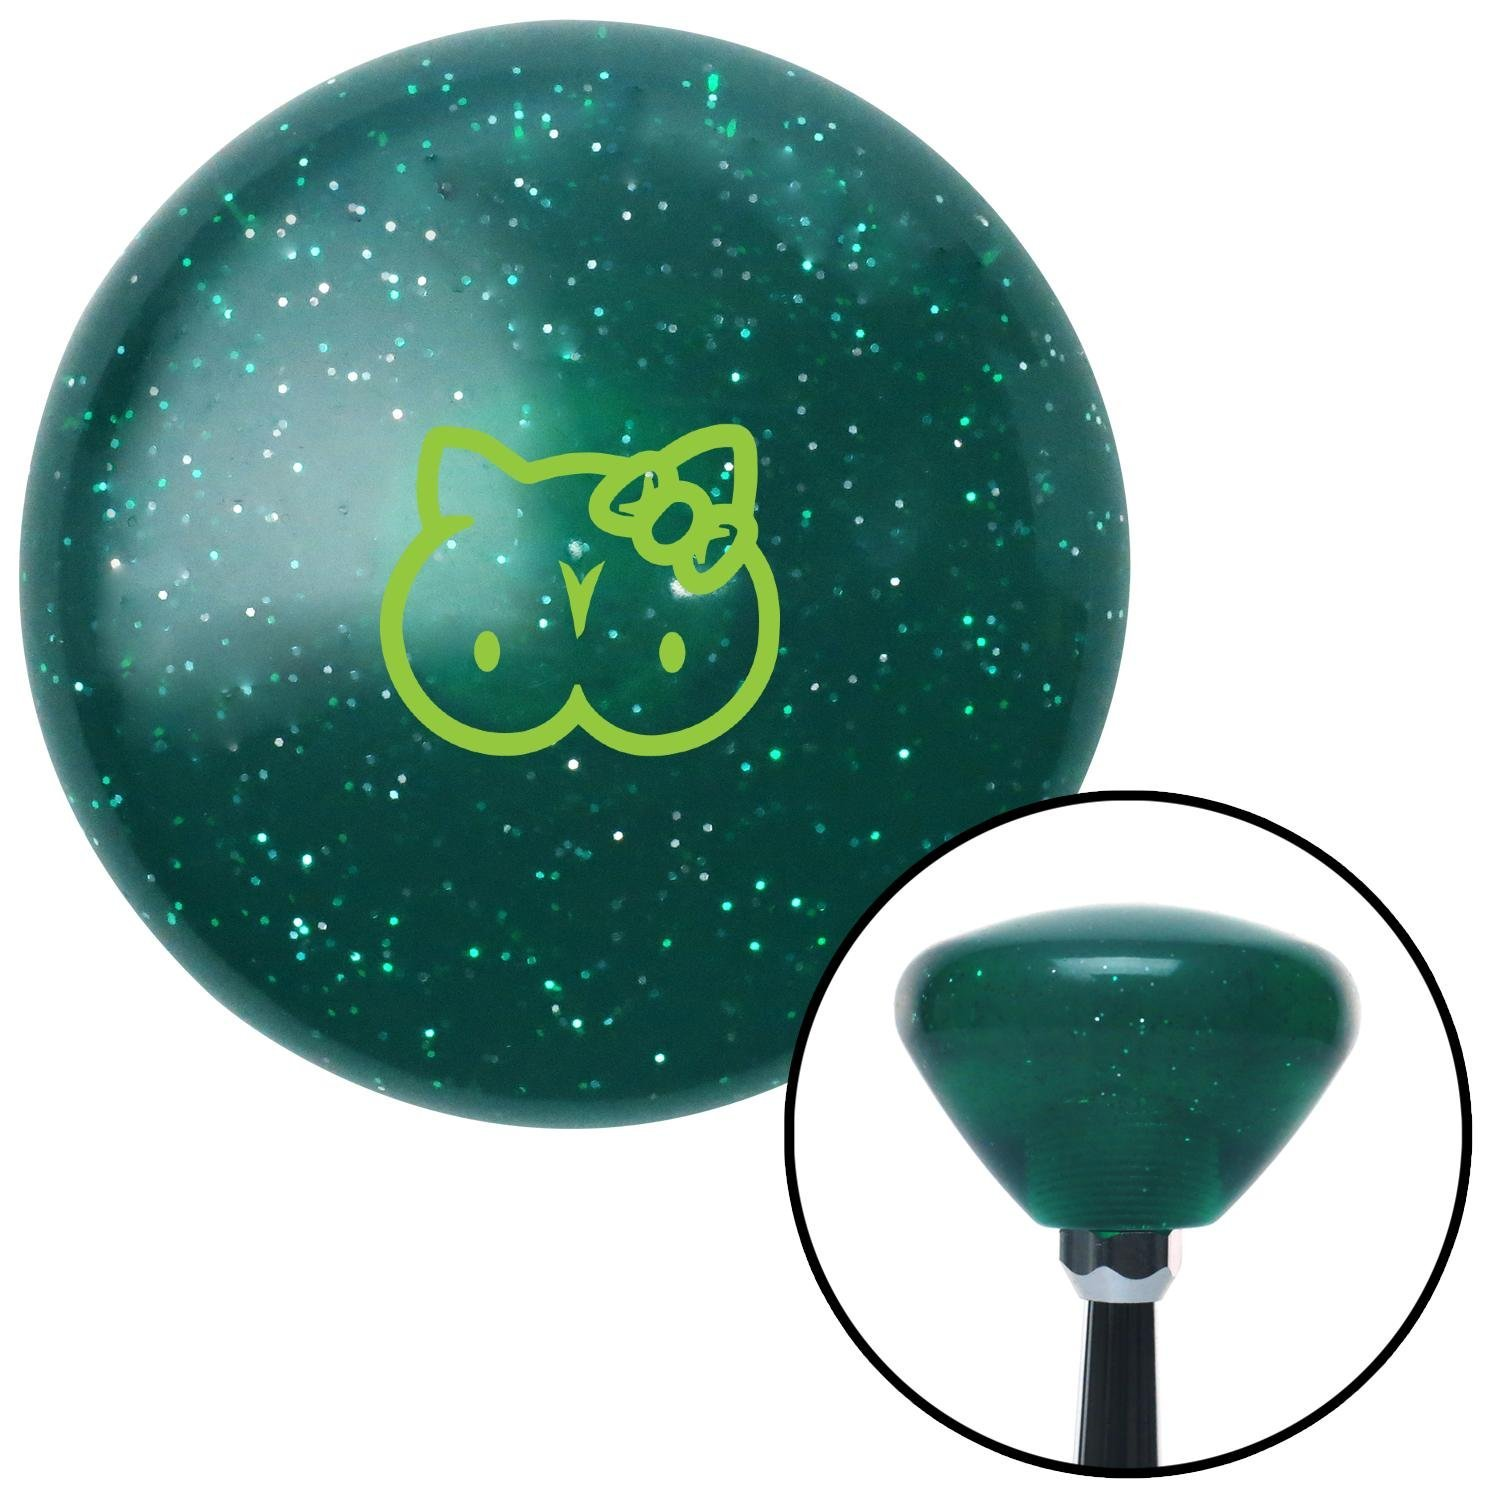 American Shifter 291602 Shift Knob Green Hello Titty Green Retro Metal Flake with M16 x 1.5 Insert